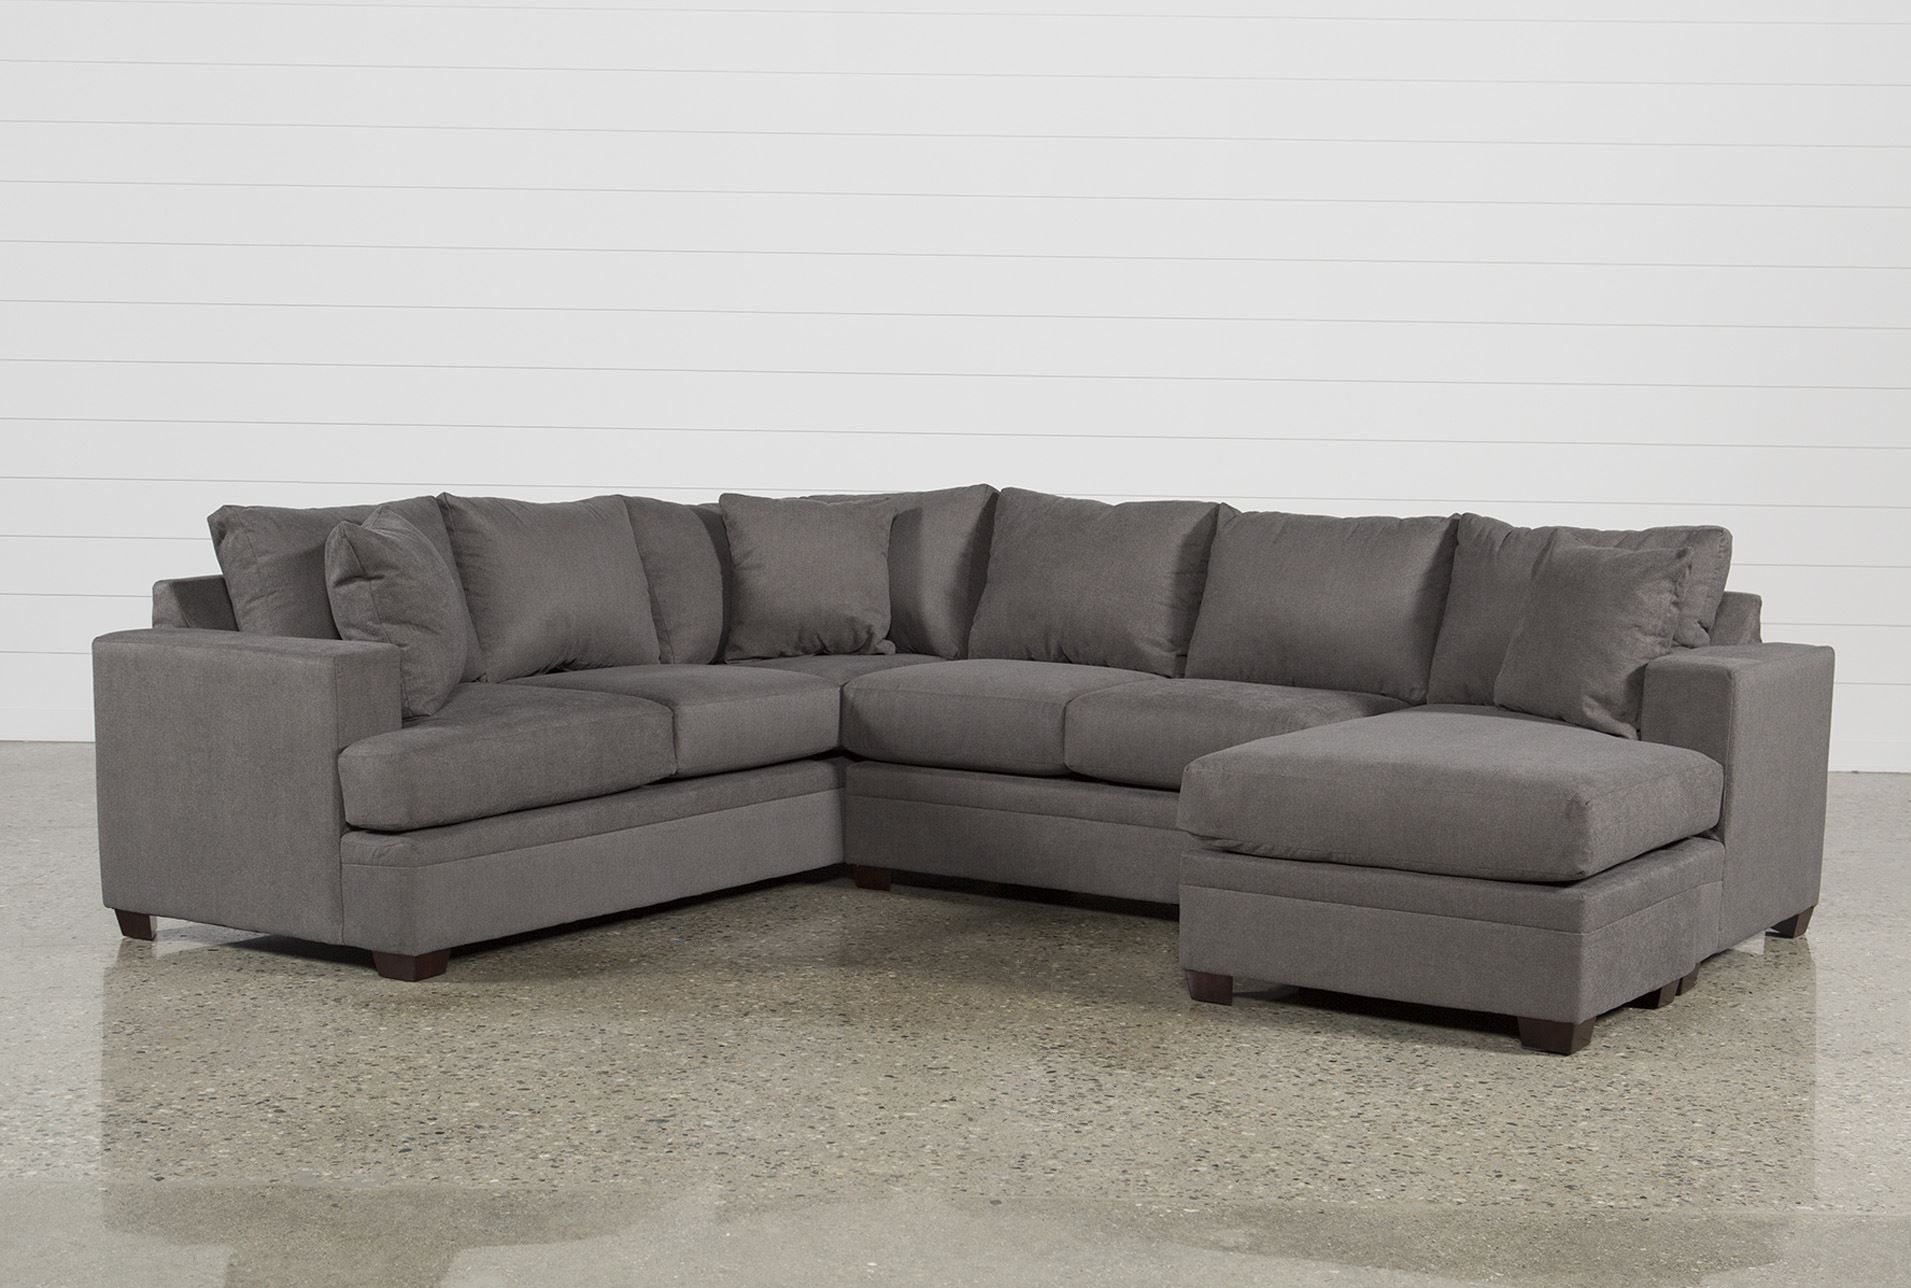 Kerri 2 Piece Sectional W/raf Chaise | Products | Sofa, Living Room Inside Mcdade Graphite Sofa Chairs (Image 10 of 20)